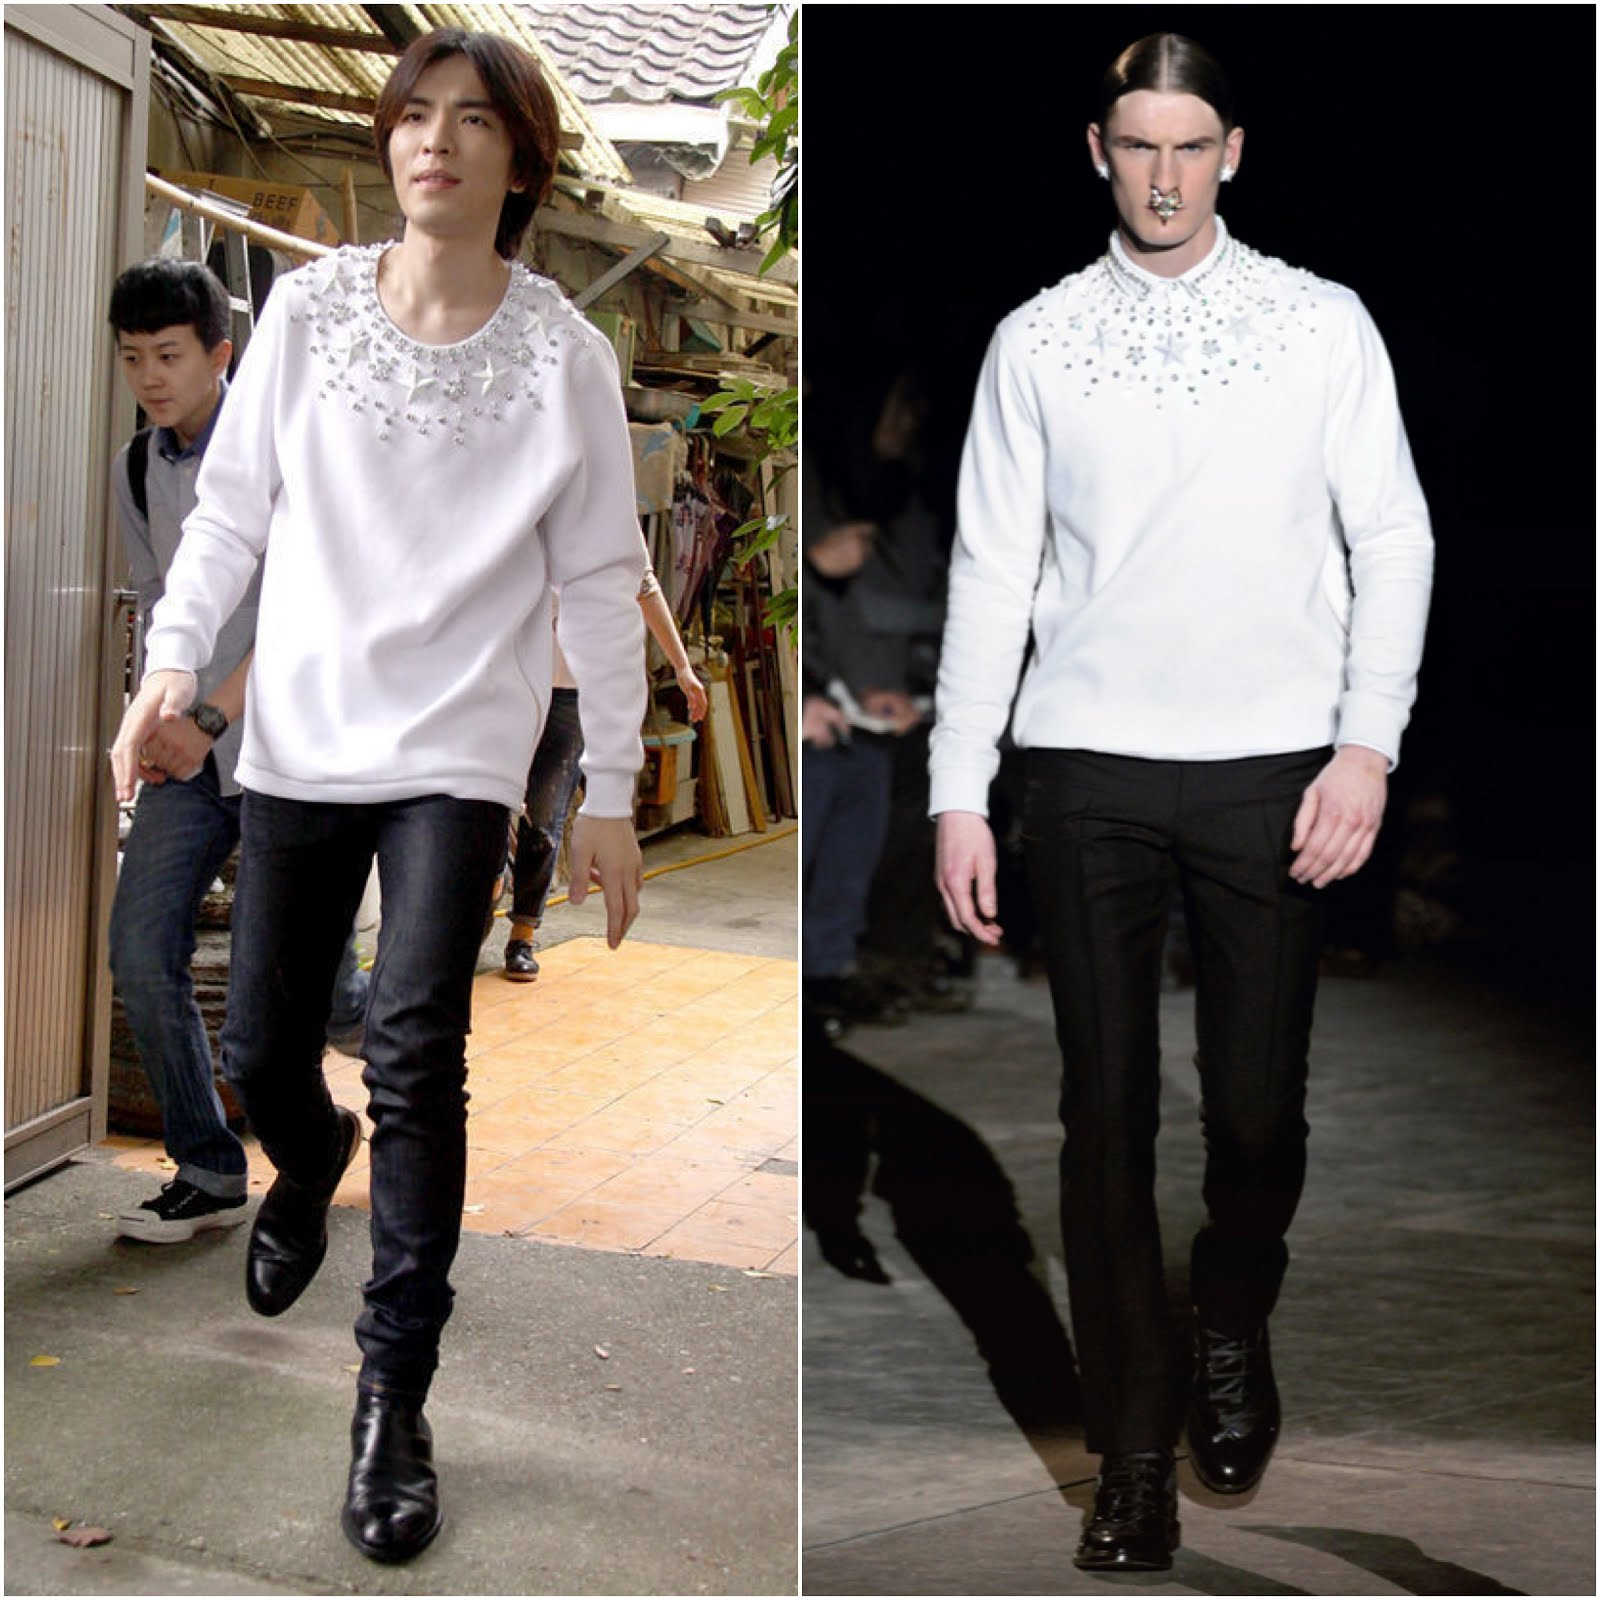 00O00 Menswear Blog http://00O00.blogspot.com Jam Hsiao Jing Teng [萧敬腾] in Givenchy menswear Fall Winter 2012 - Charity Promo, Taiwan